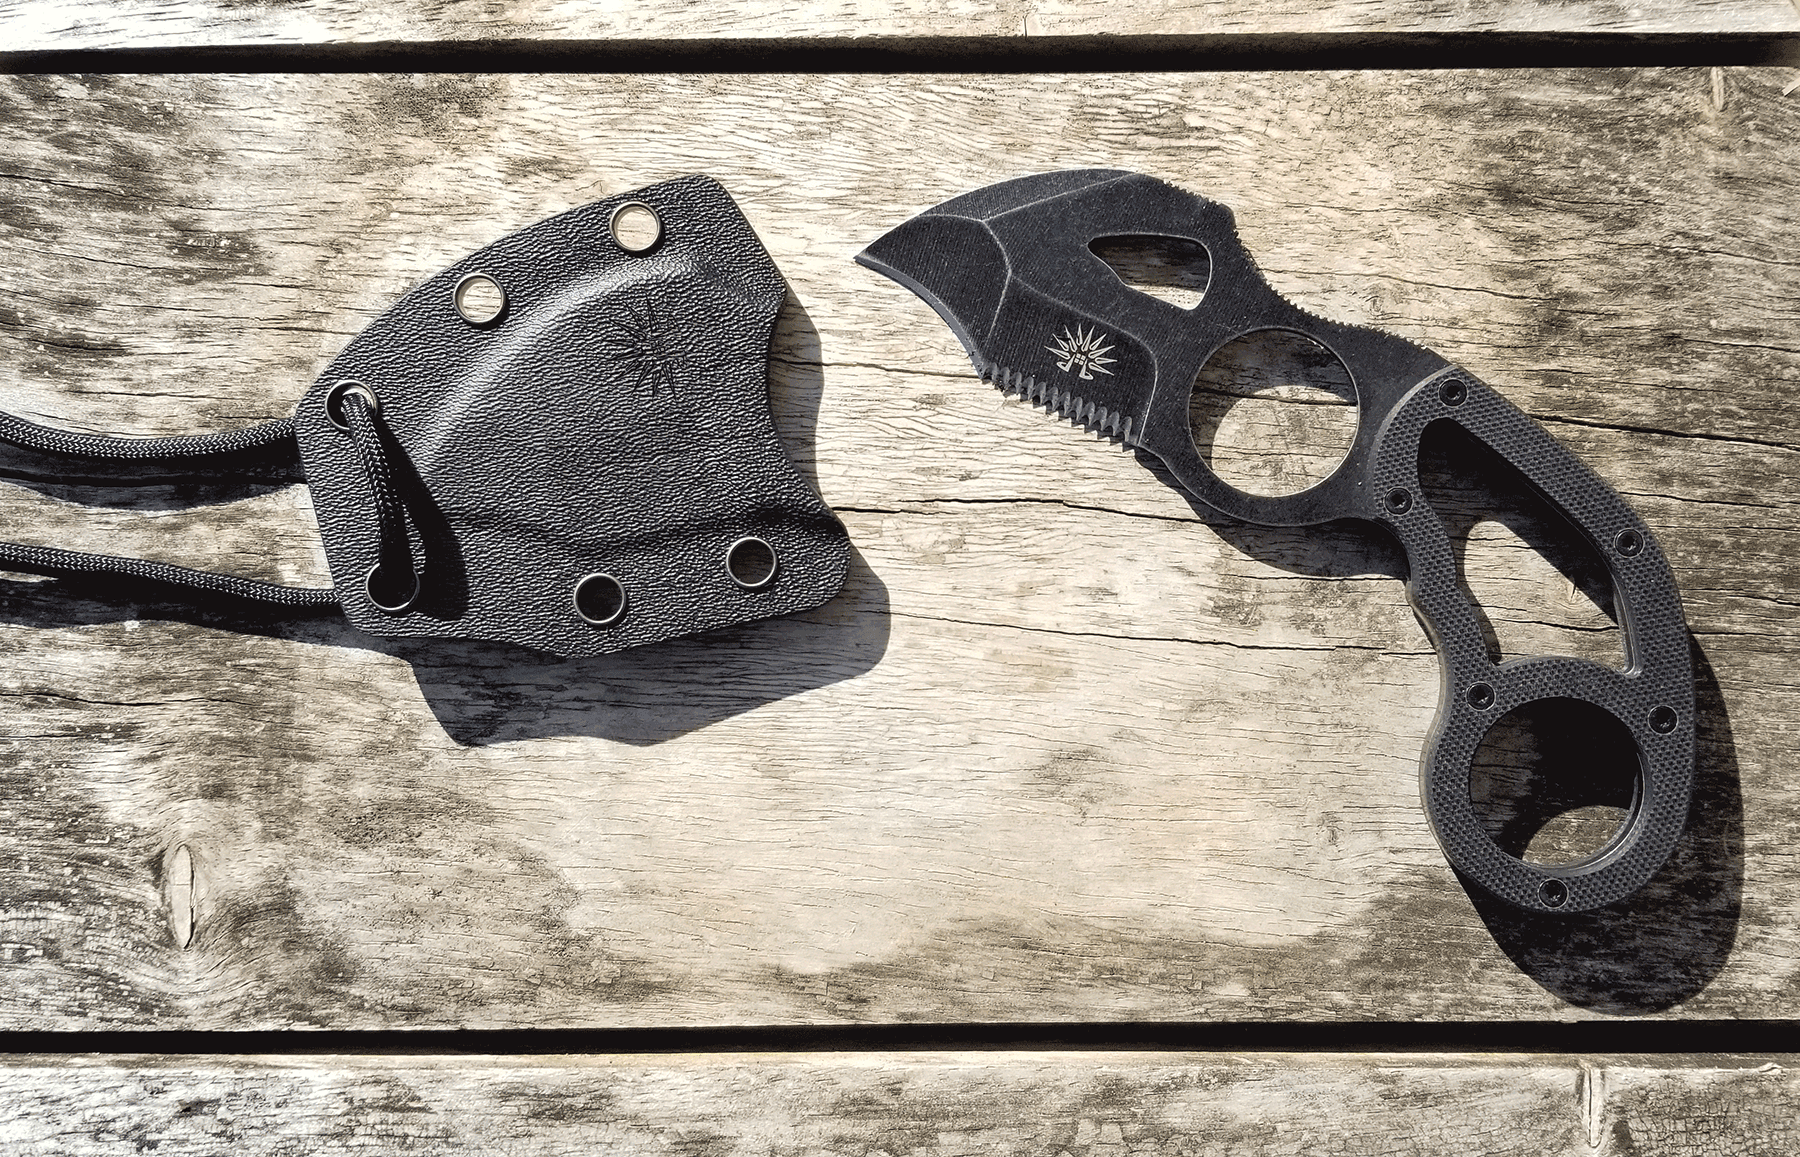 Review Of The Hawkeye Neck Knife By Off-Grid Knives